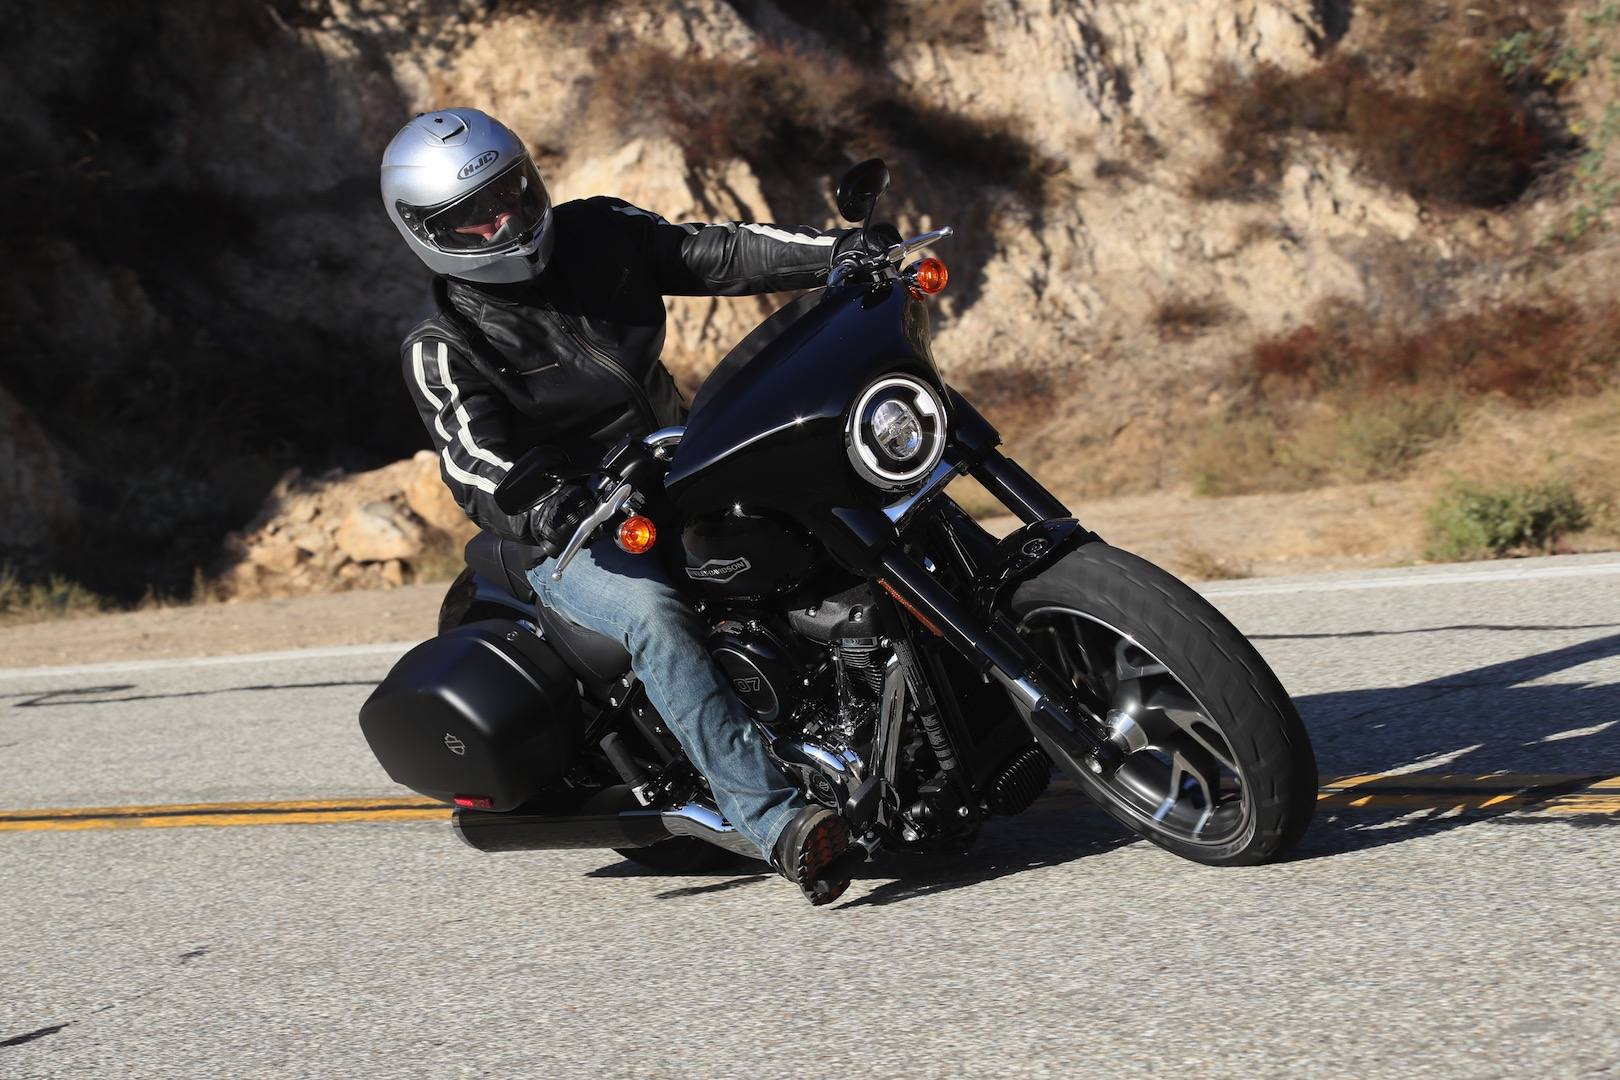 Harley-Davidson's Sport Glide brings riders the best of both worlds